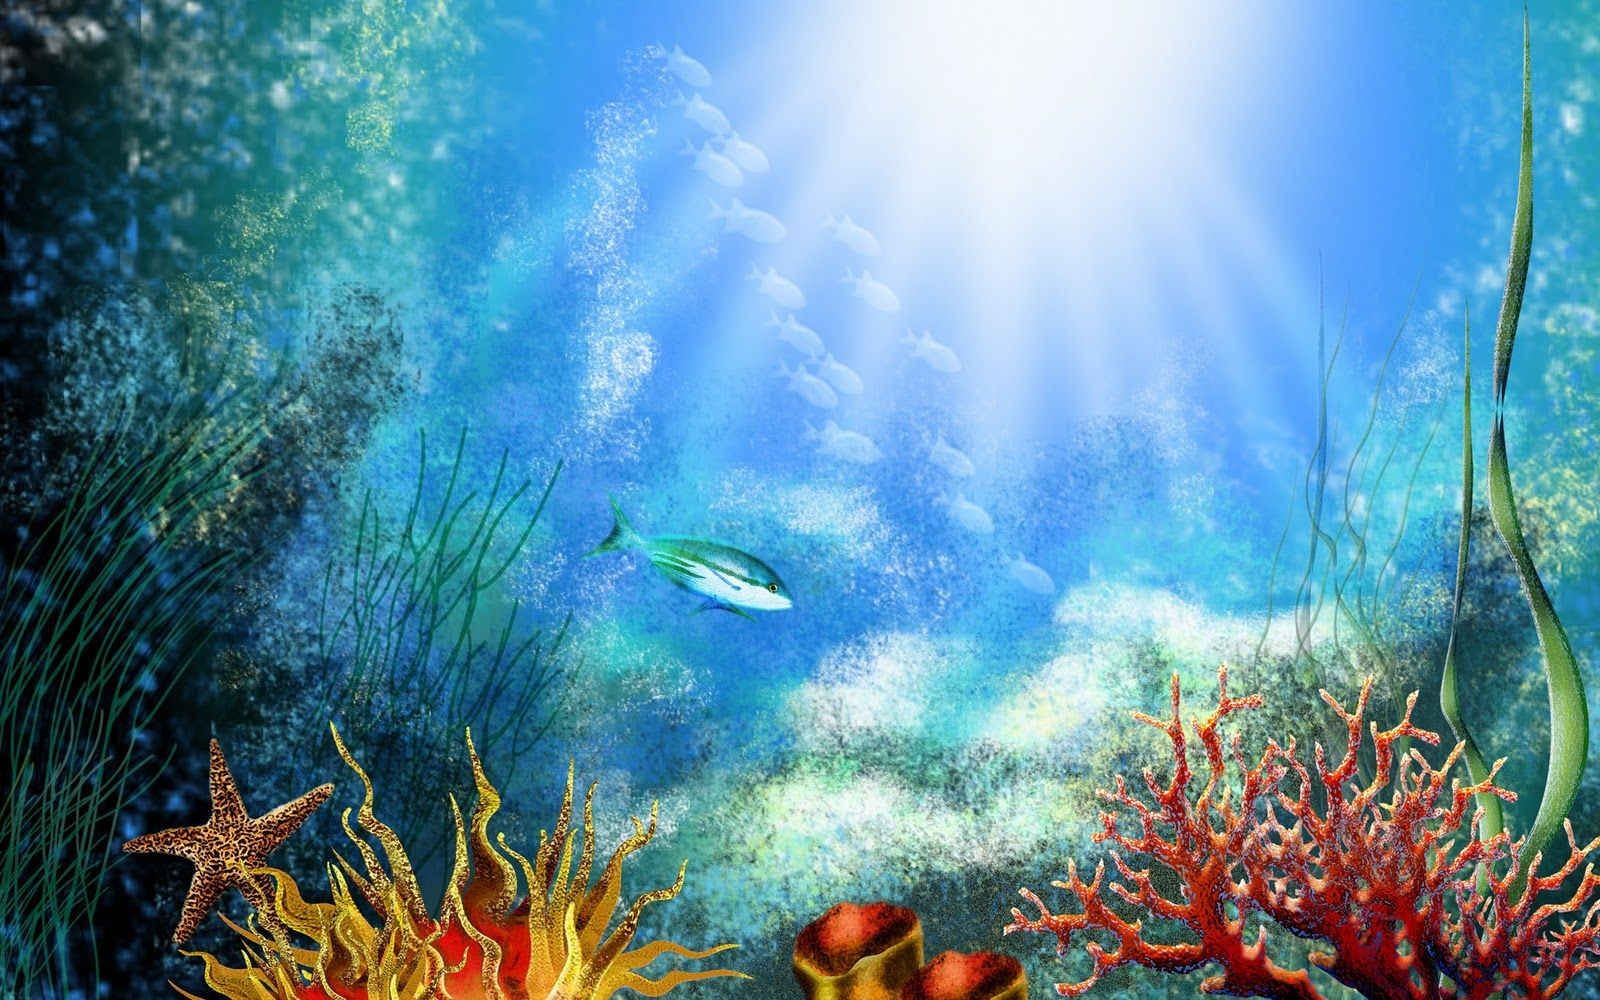 Wallpaper 3d Animated 3d Screensaver Animated Underwater Wallpaper Aquarium Backgrounds Aquarium Live Wallpaper